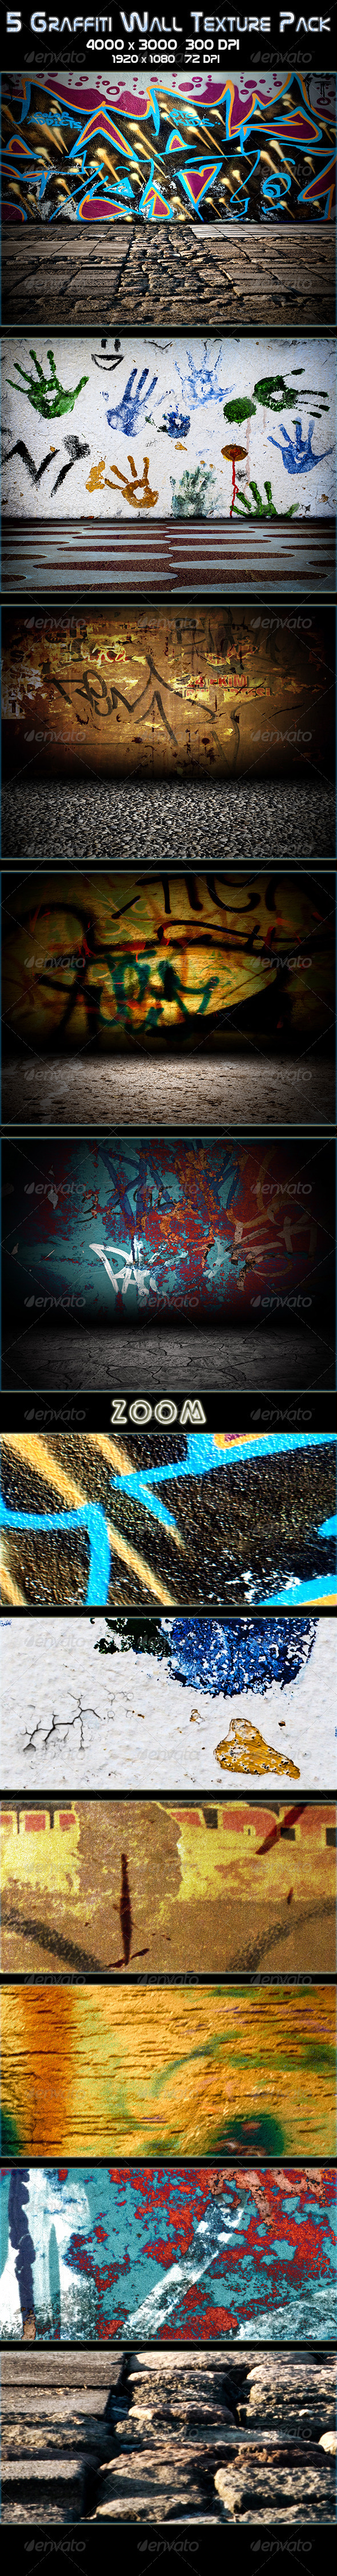 5 Graffiti Wall Texture Pack - Urban Backgrounds